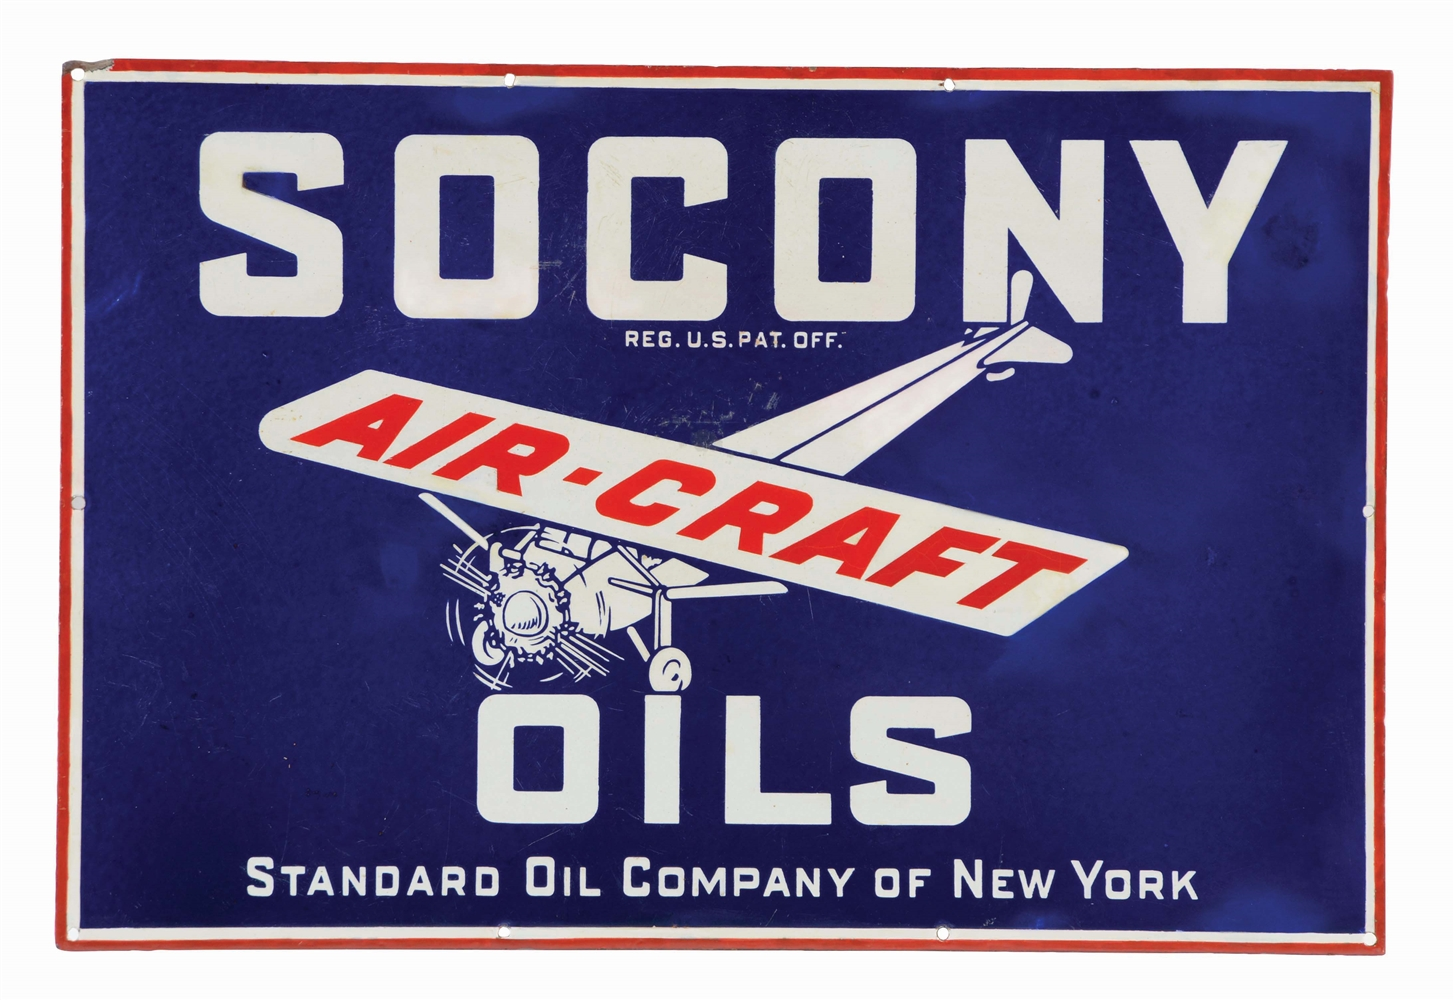 SOCONY AIR-CRAFT MOTOR OILS PORCELAIN SIGN W/ AIRPLANE GRAPHIC.